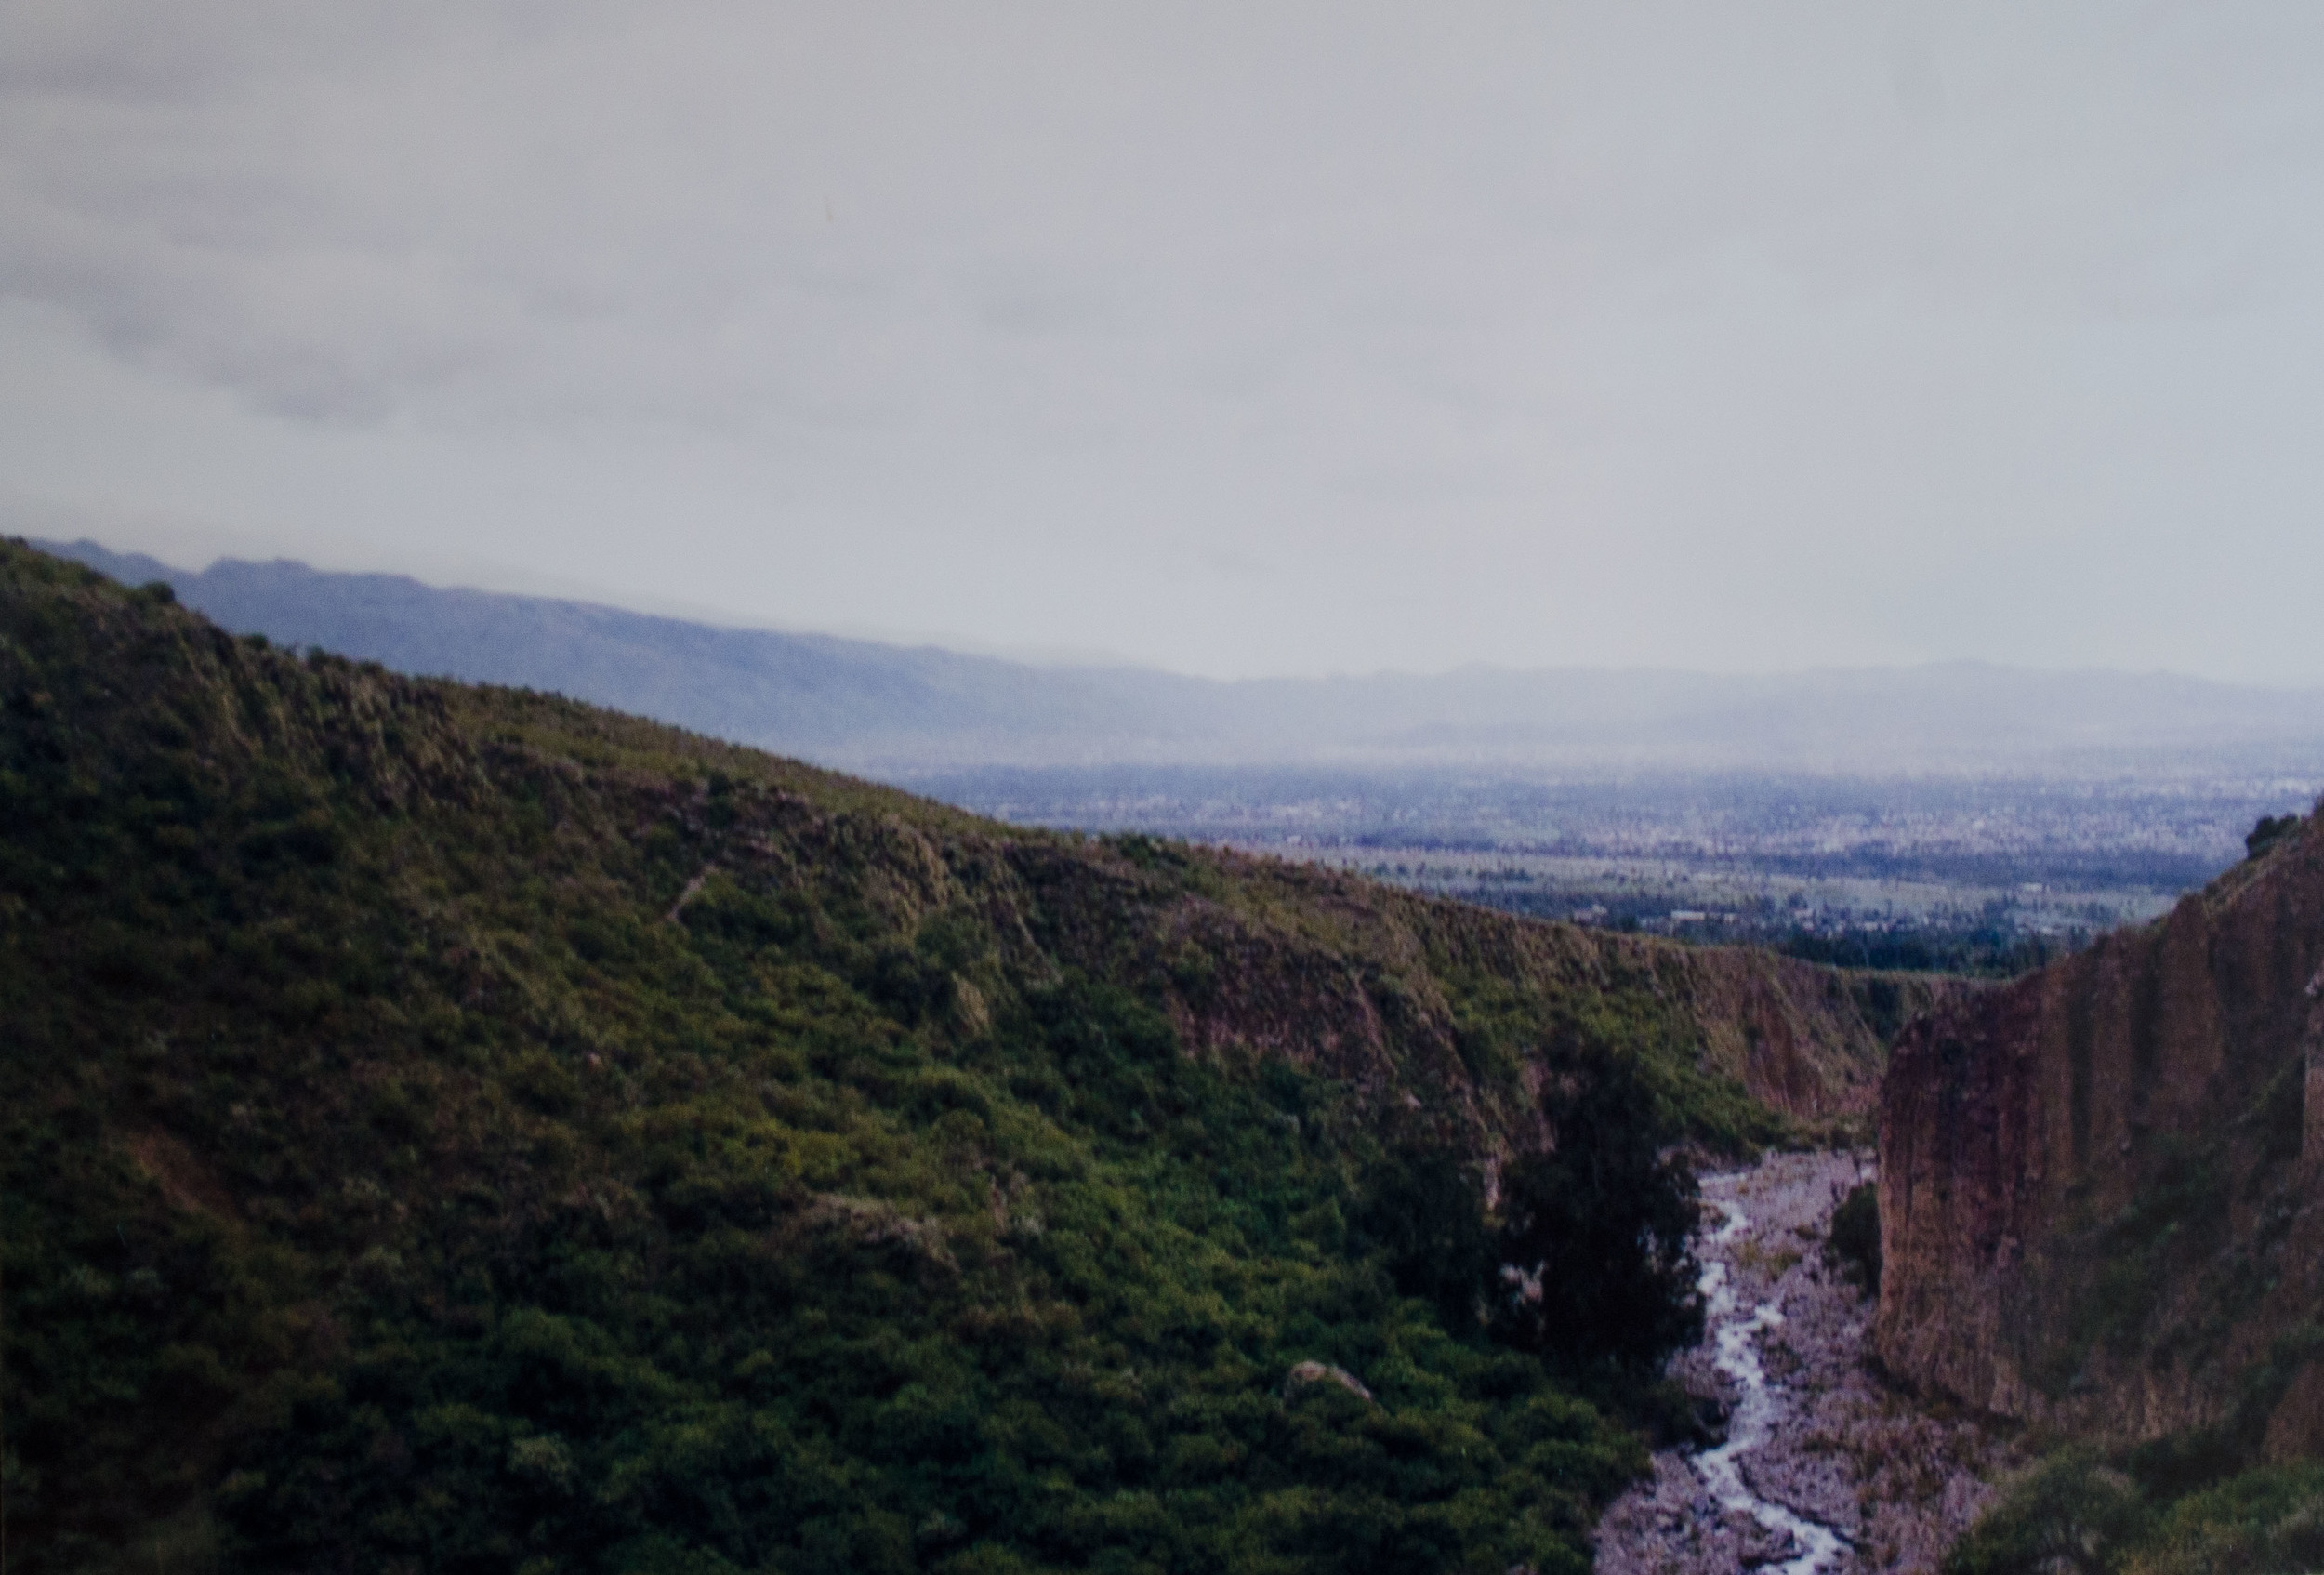 looking towards Cochabamba from a vantage point on the waterfall hiking trail // february 2015